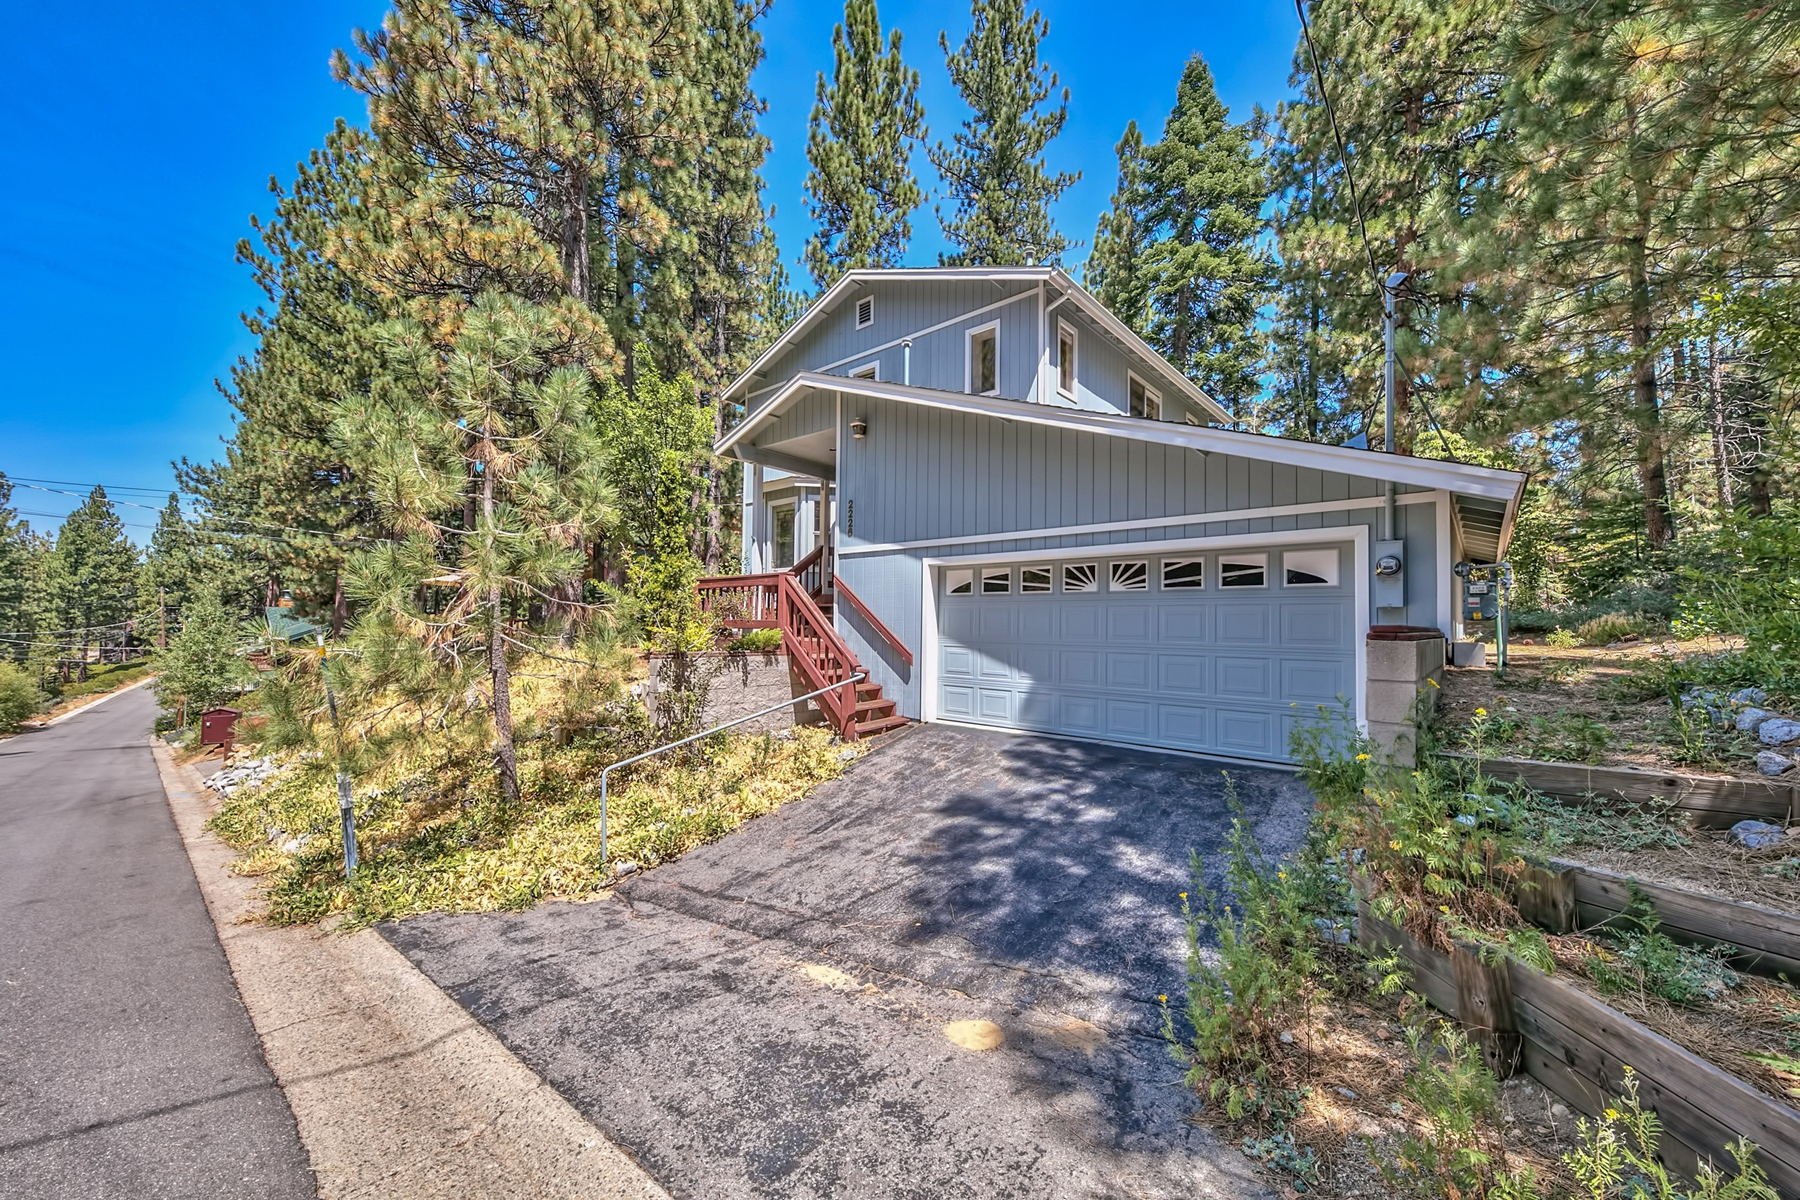 Single Family Home for Active at 2226 Lupine Trail, South Lake Tahoe CA, 96150 2226 Lupine Trail South Lake Tahoe, California 96150 United States